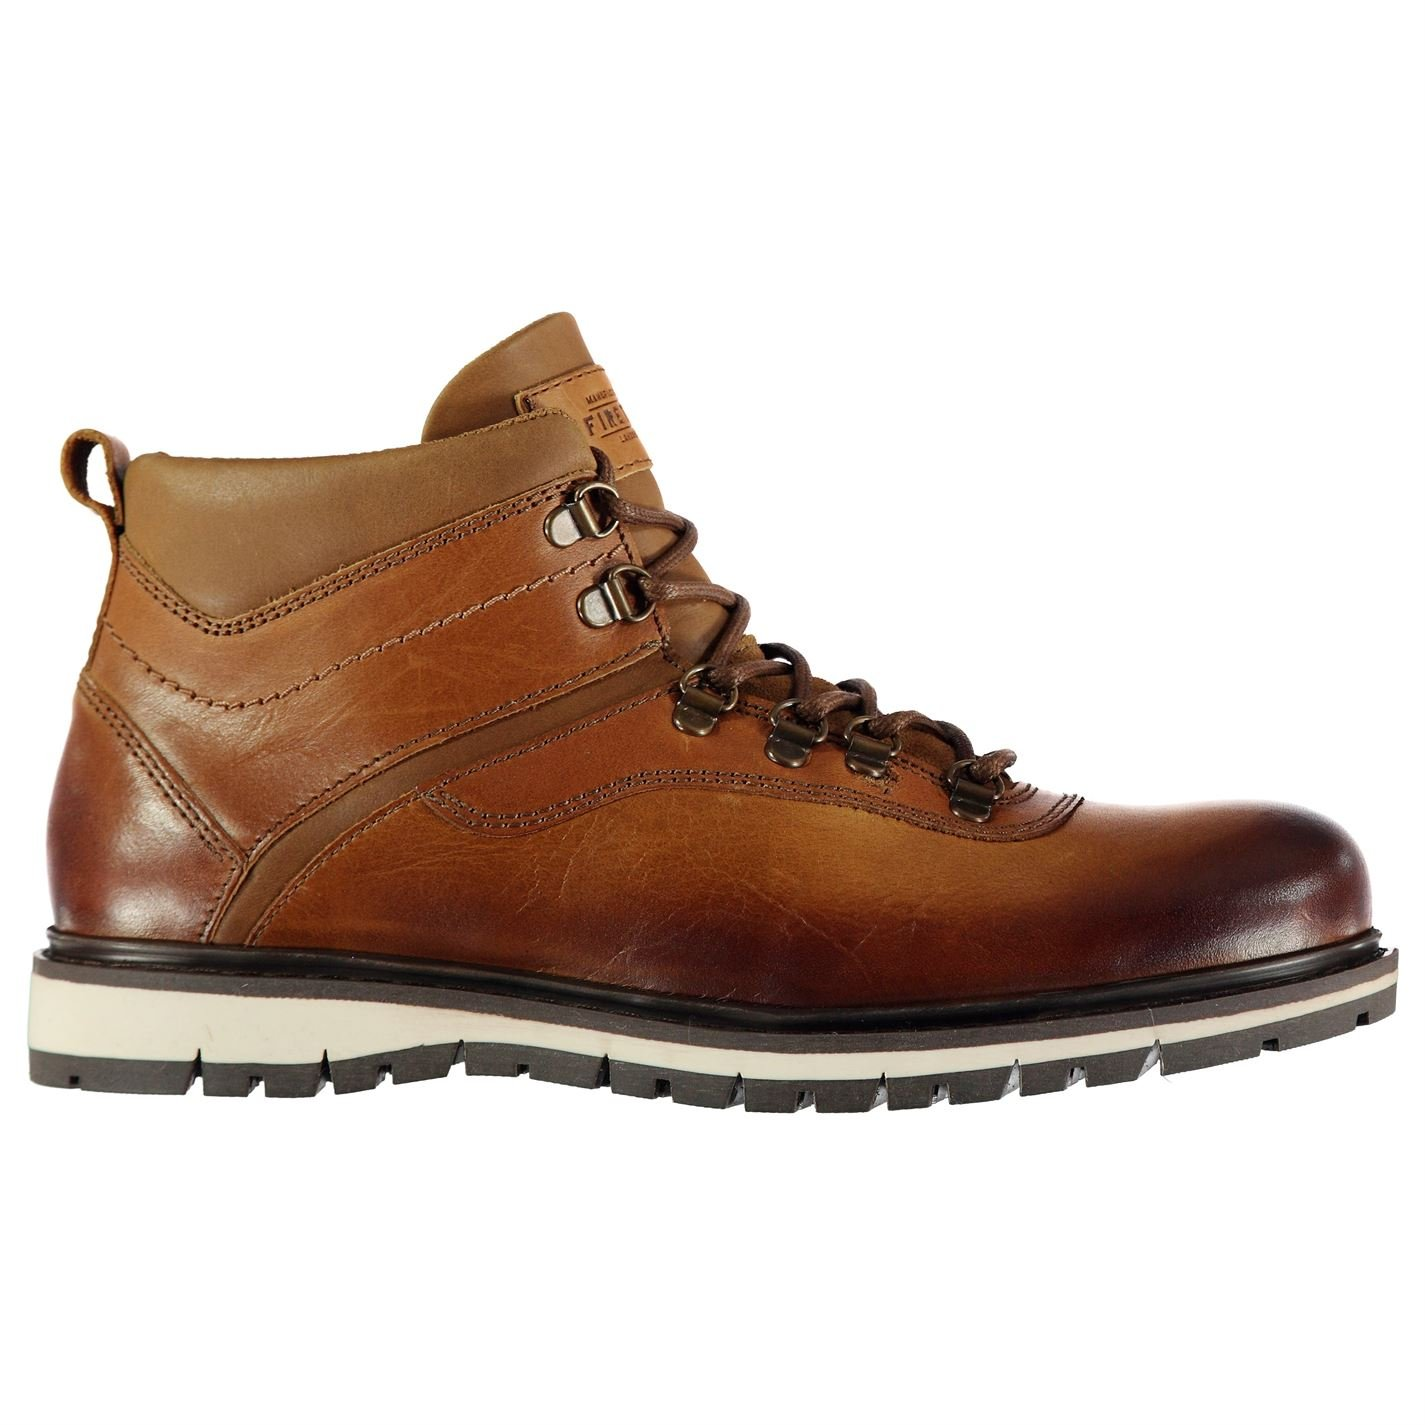 Excellent Condition Comfortable And Easy To Wear Size 1 Brown Supply Kids Firetrap Boots